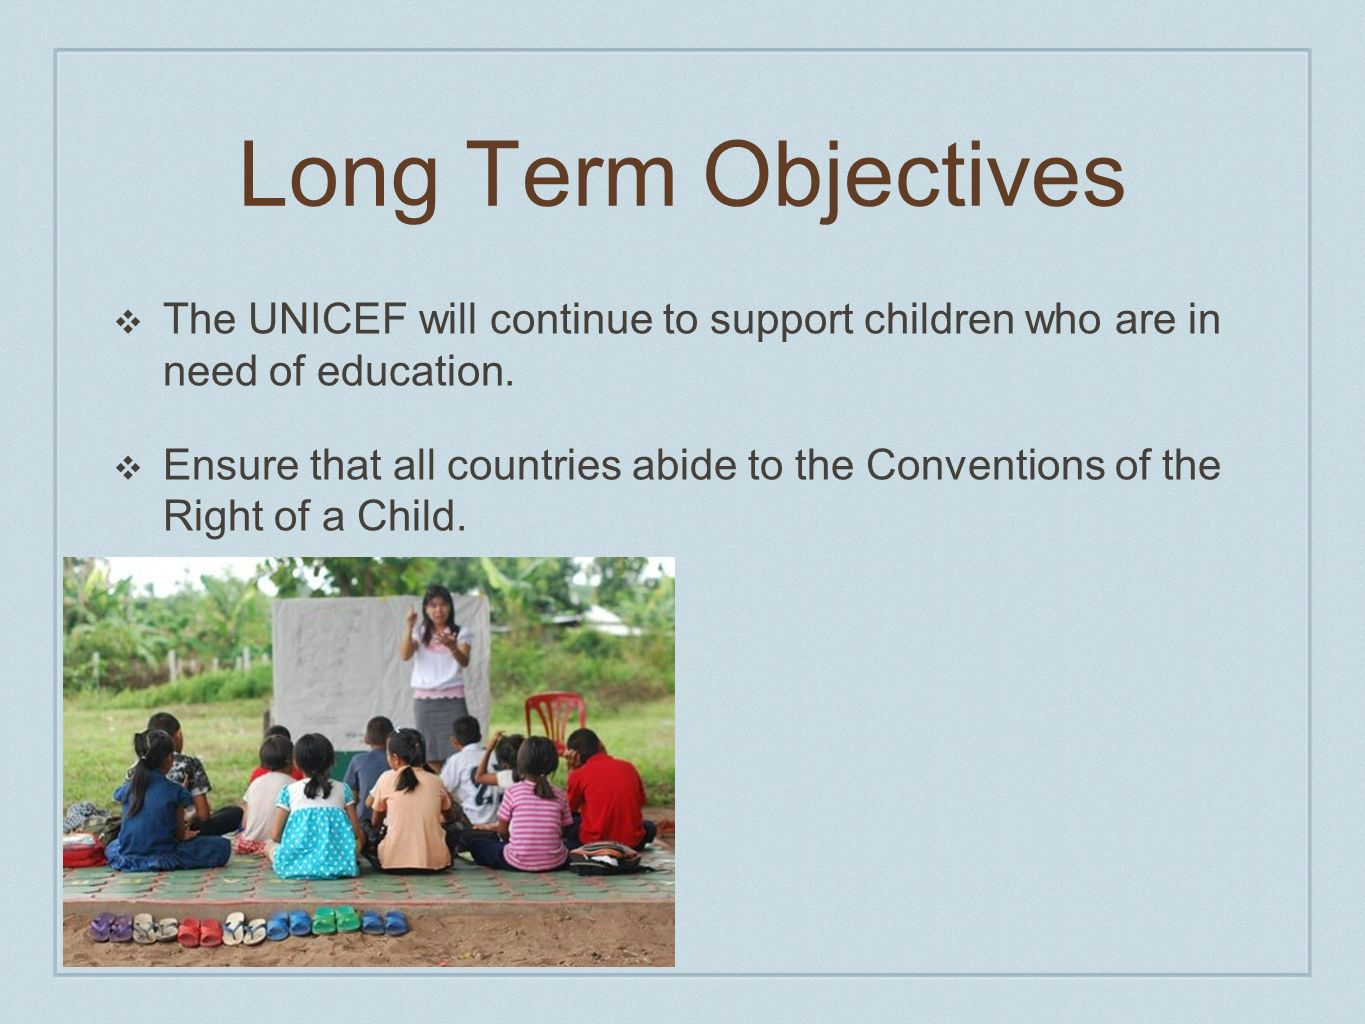 Long Term Objectives The UNICEF will continue to support children who are in need of education.